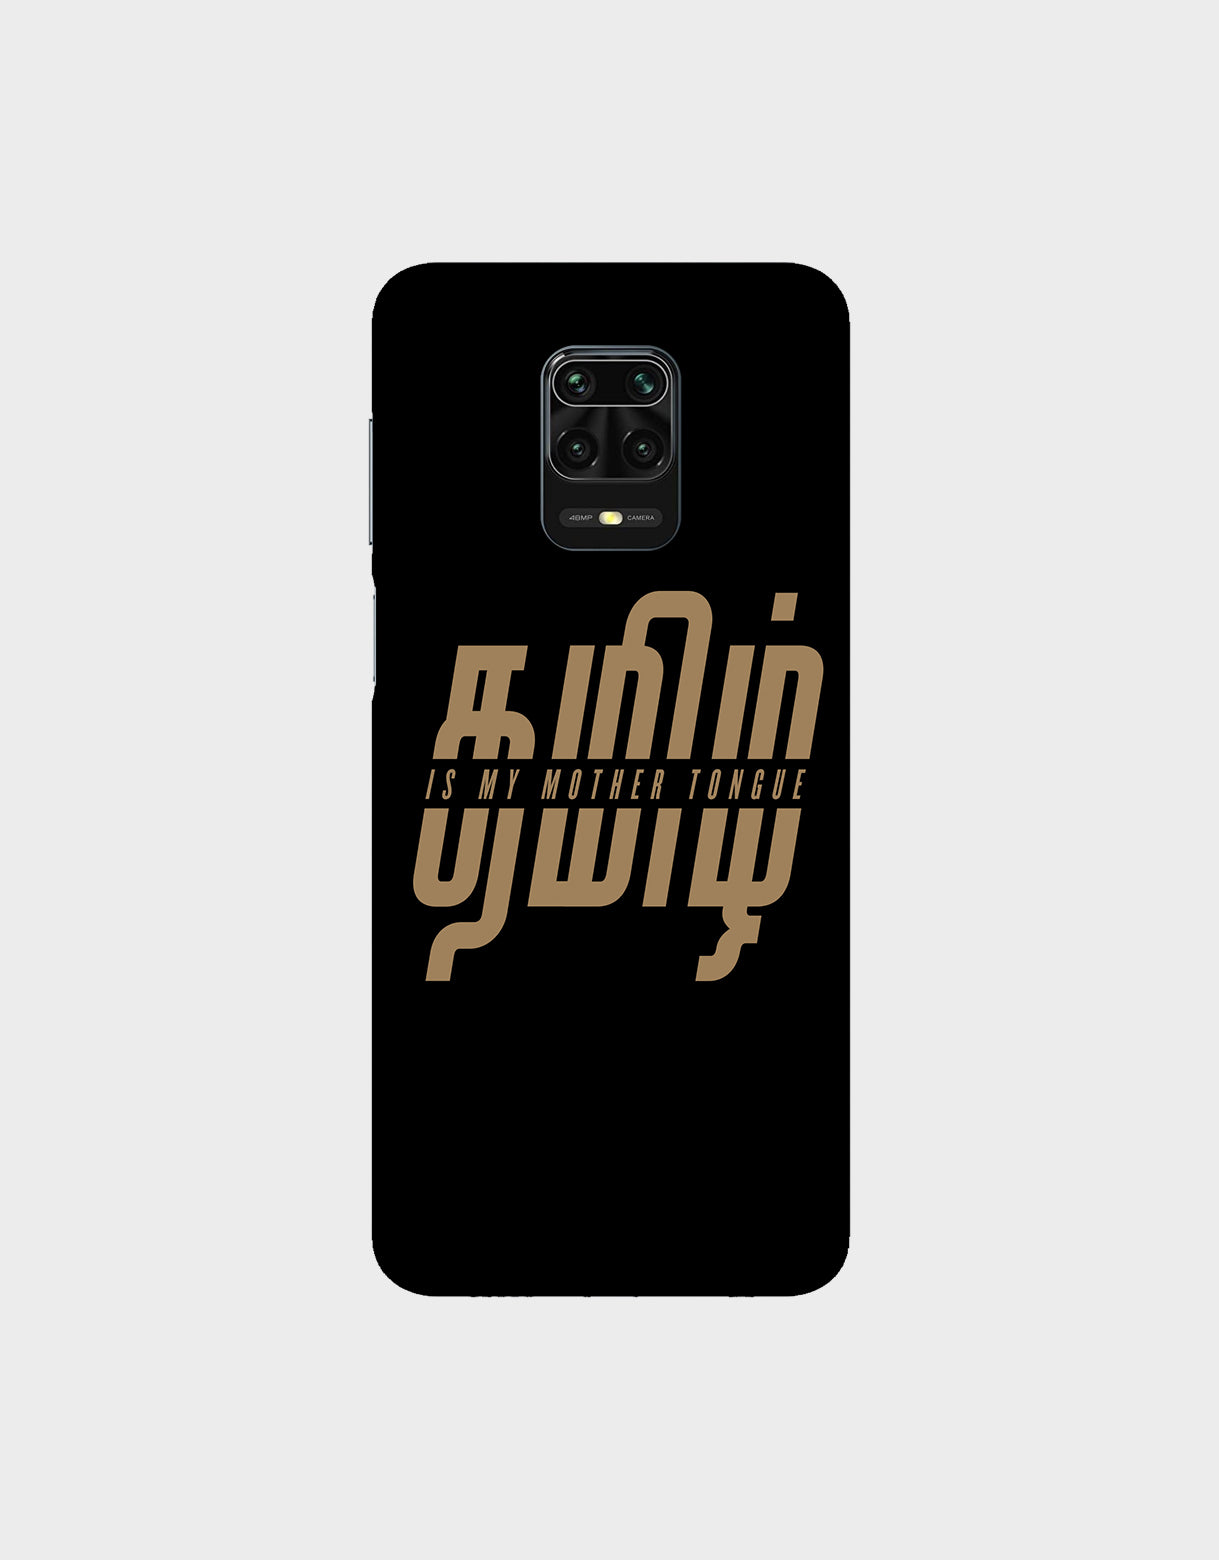 Tamil is my mother tonque -Redmi Note 9 Pro  Mobile covers